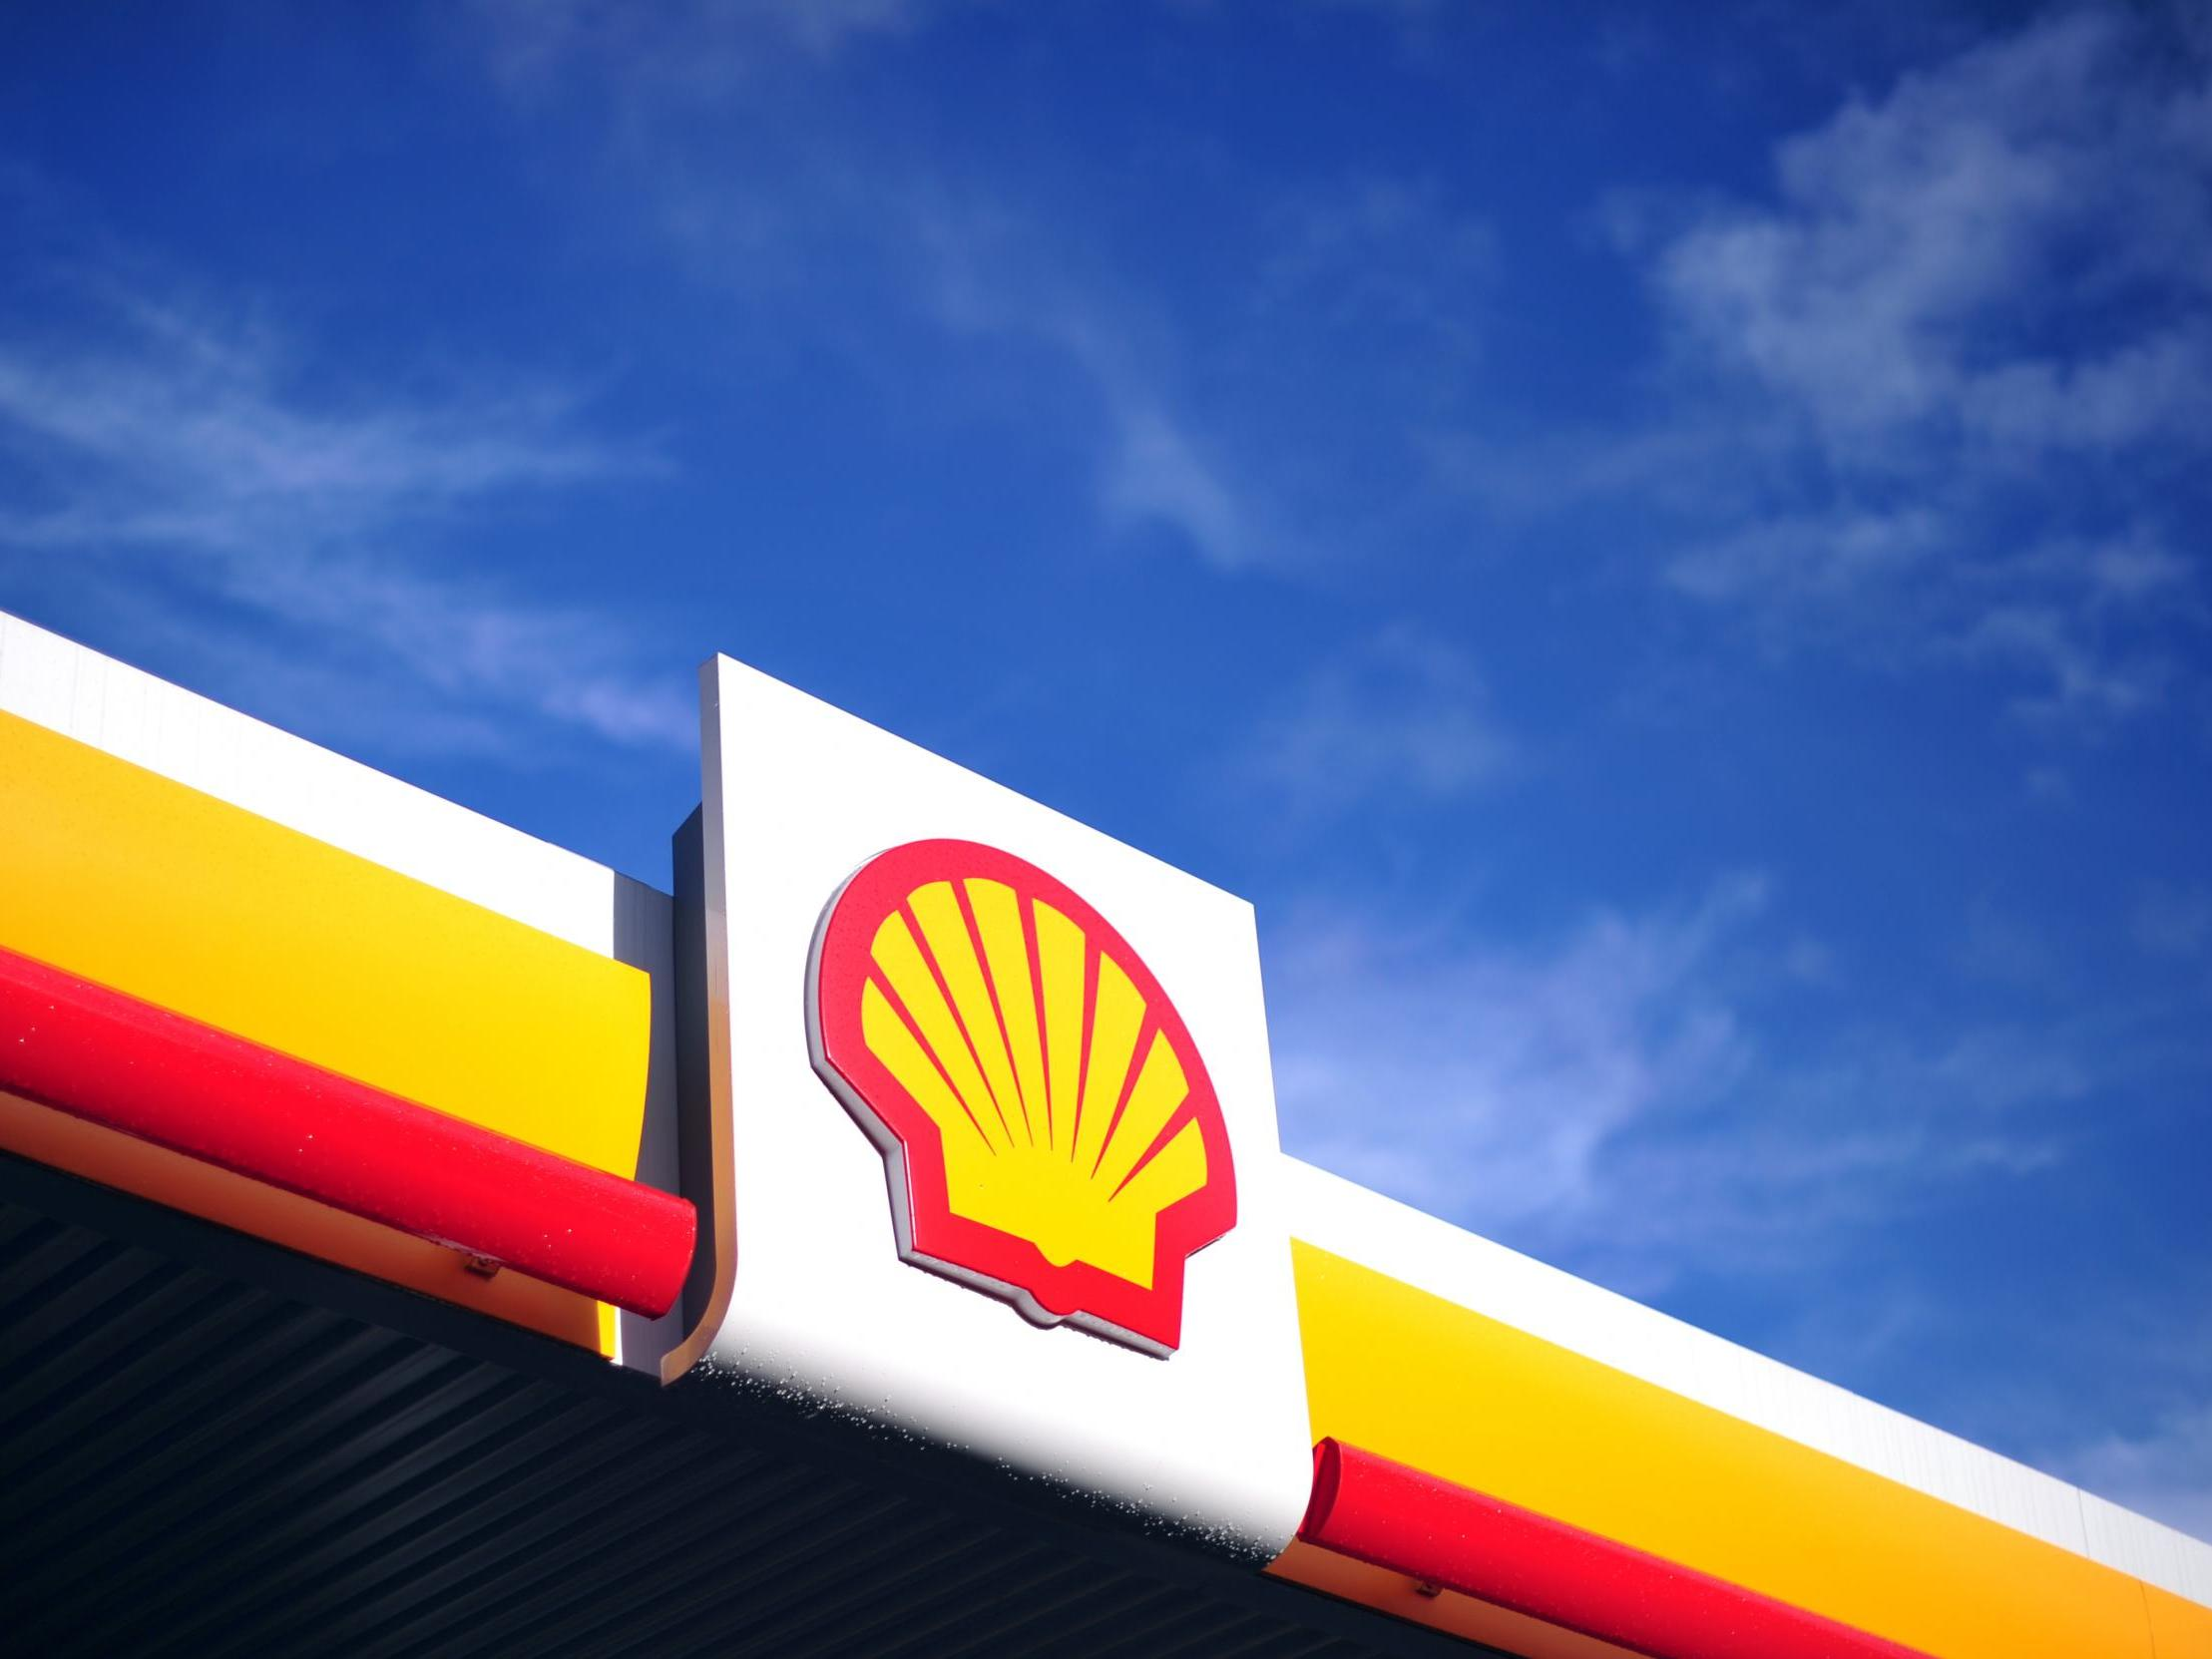 Shell - latest news, breaking stories and comment - The Independent